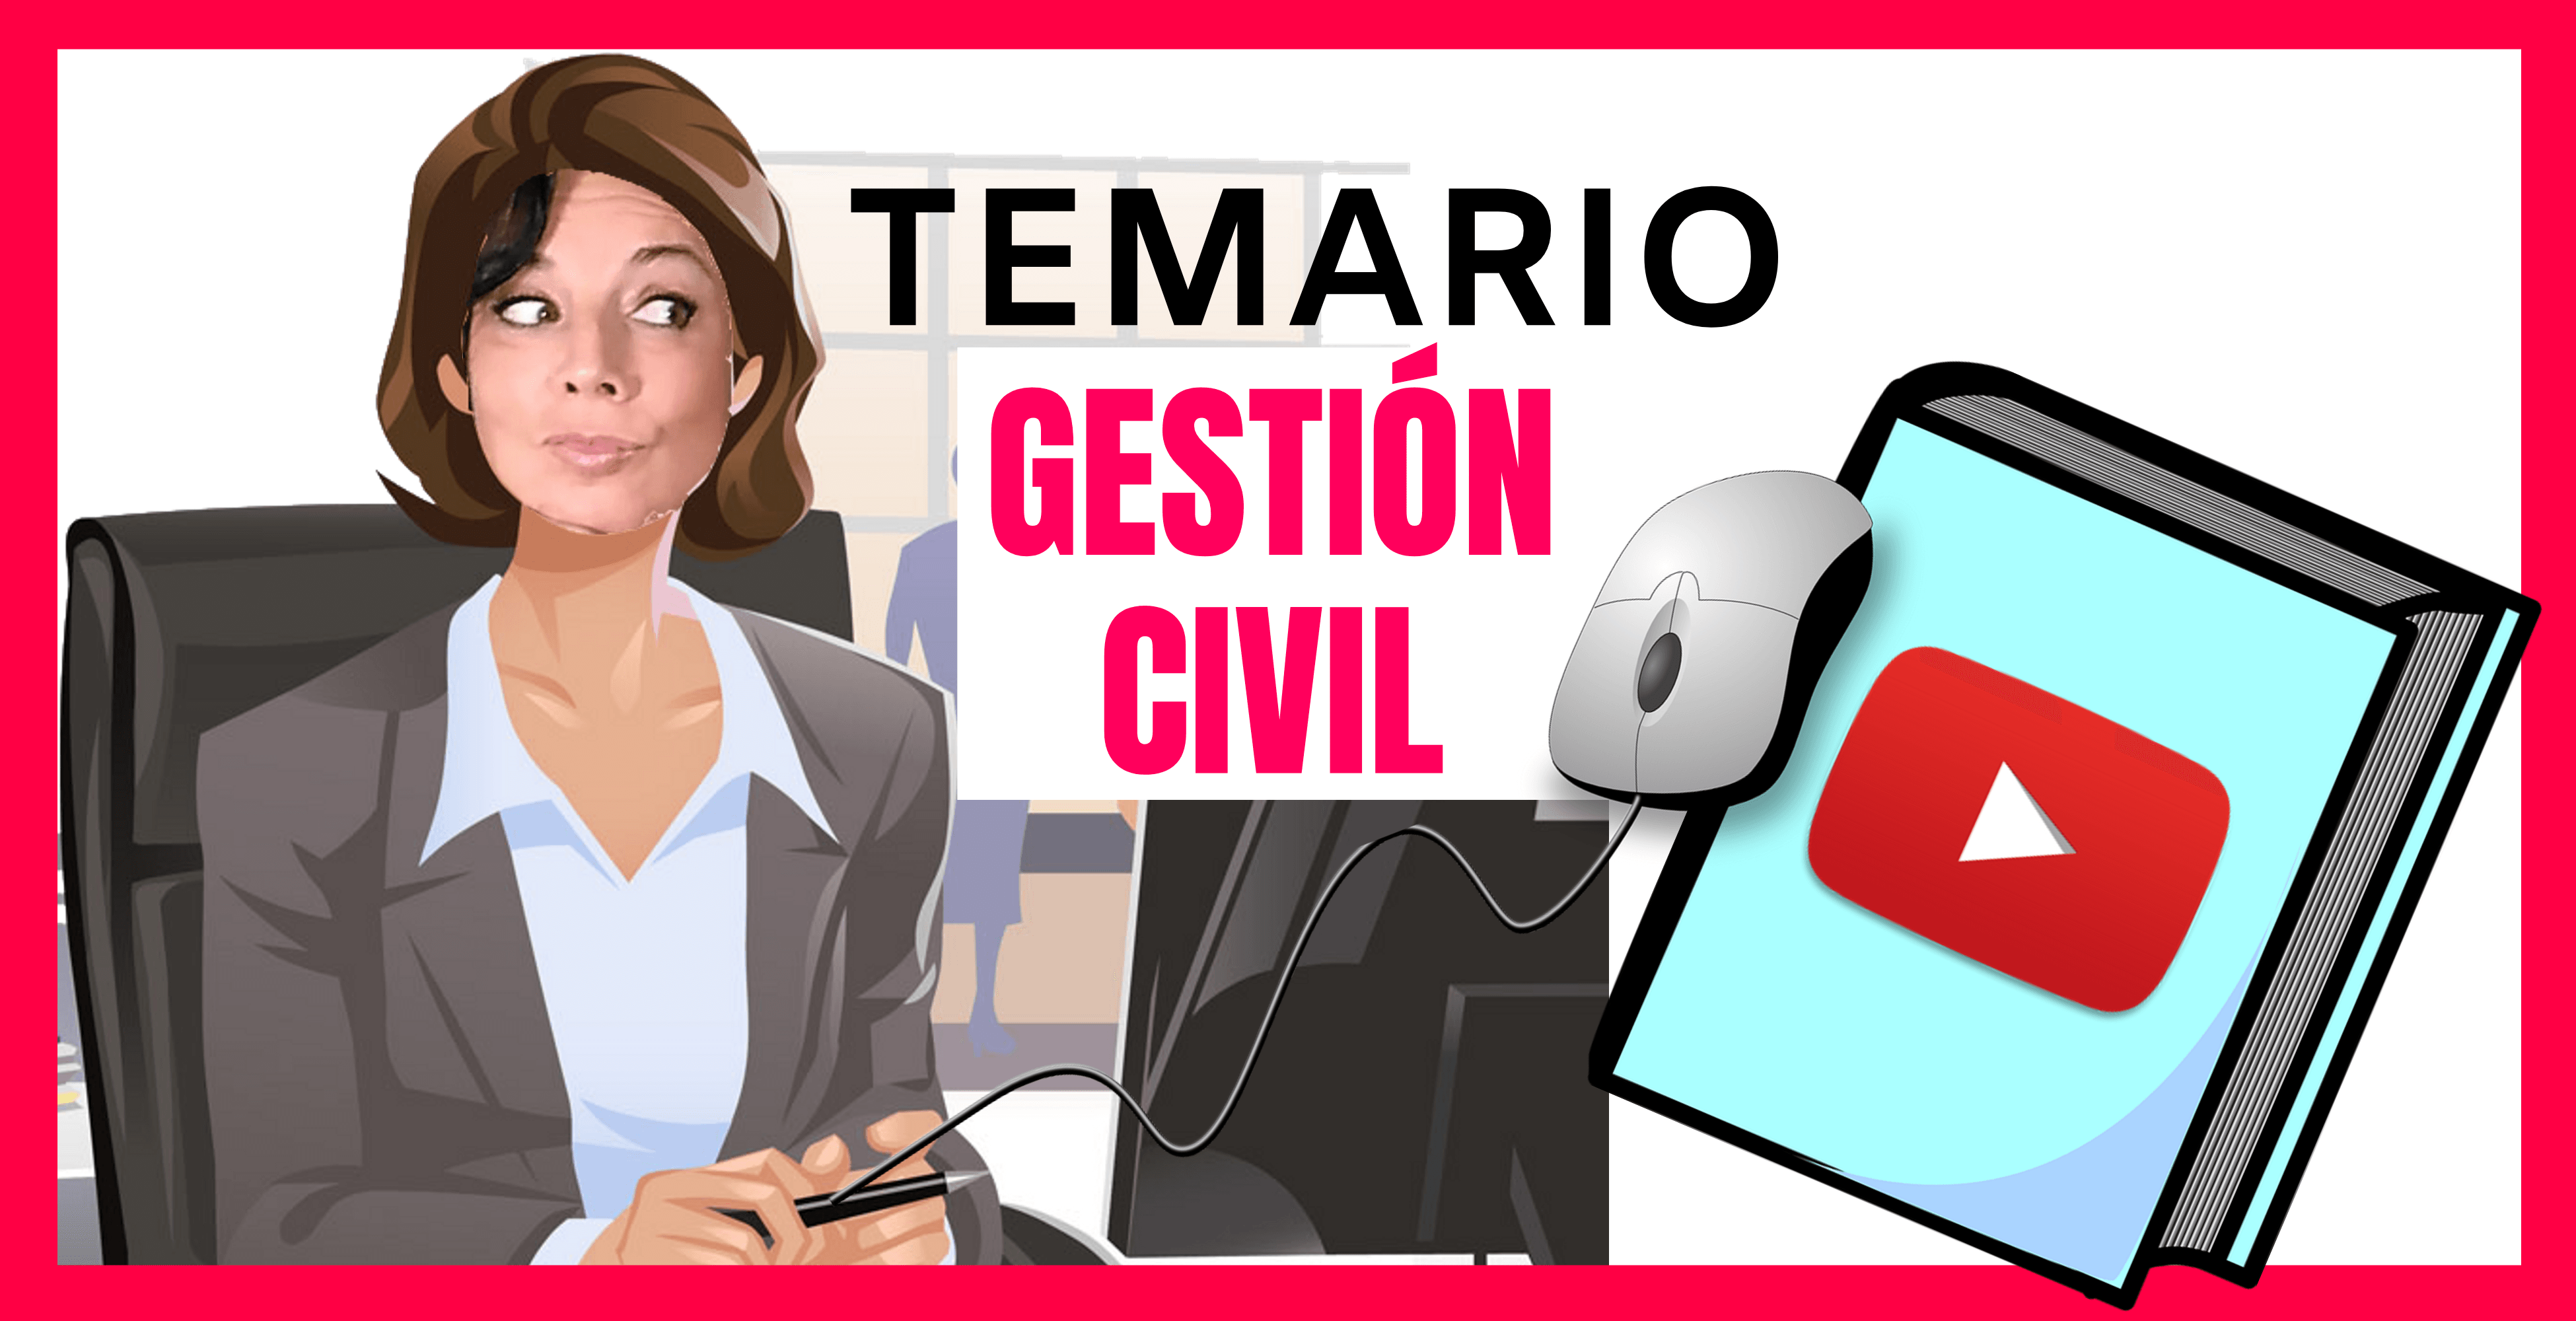 temario oposiciones gestion civil en video